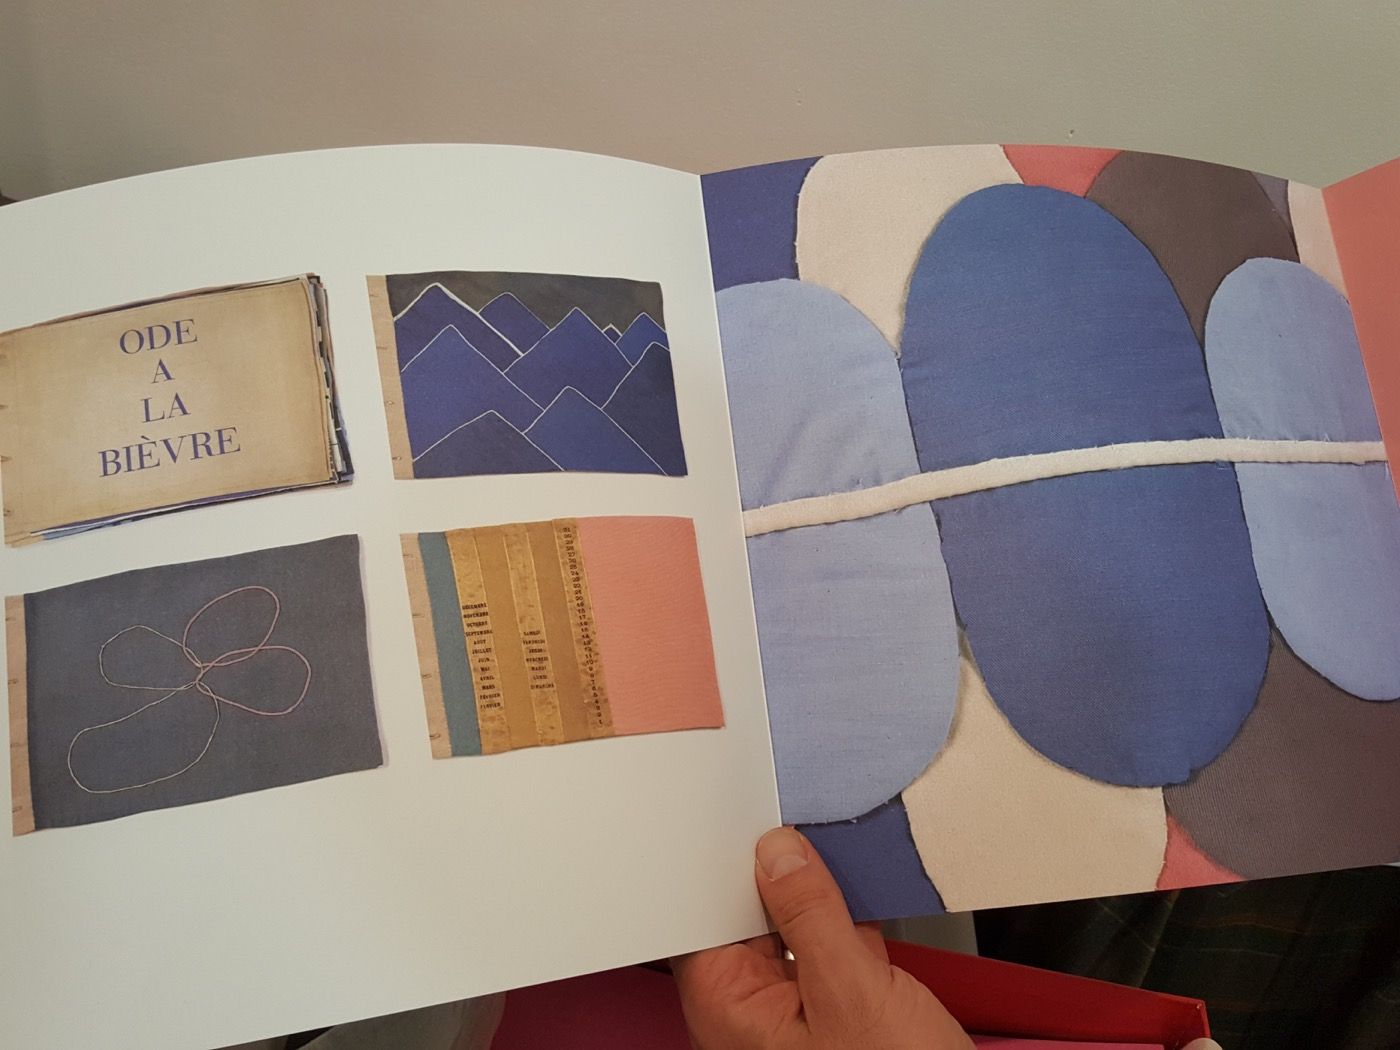 Another insert in Blood on Paper, by Elena Foster and Rowan Watson